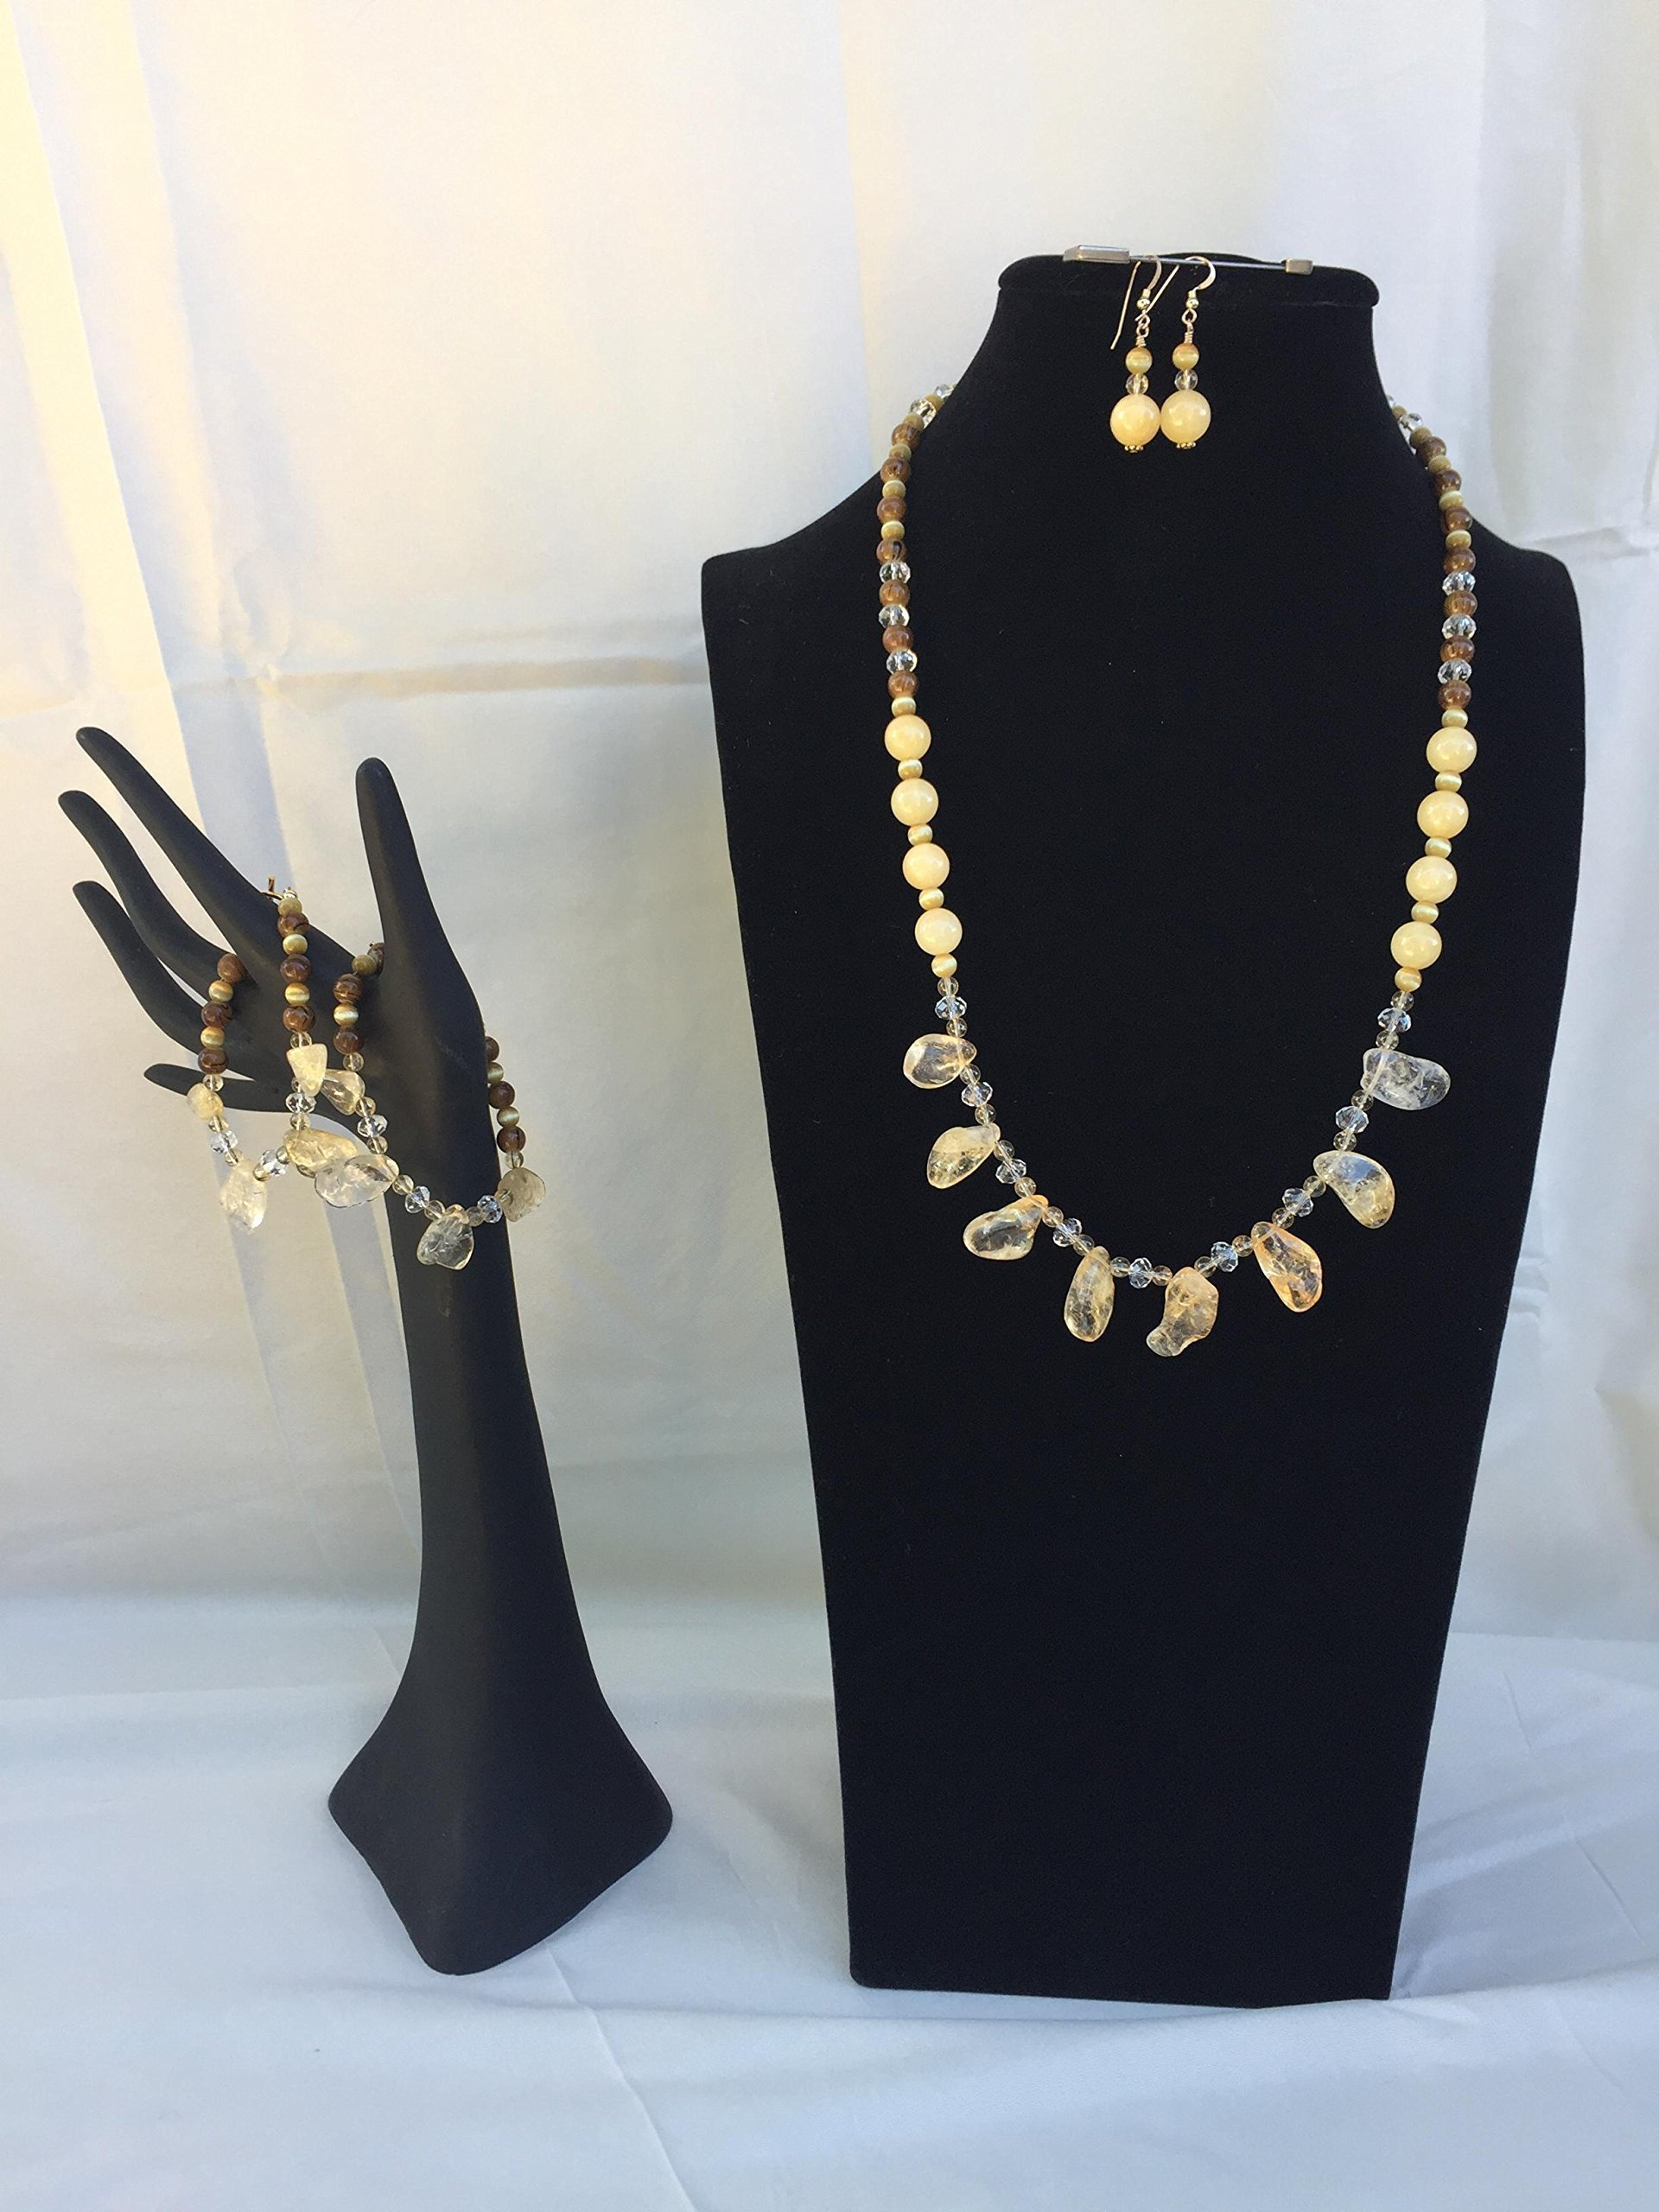 Gorgeous handmade Citrine jewelry set with a necklace, two bracelets and matching dangle earrings. Citrine, Opal and mixed gemstones. One of a kind